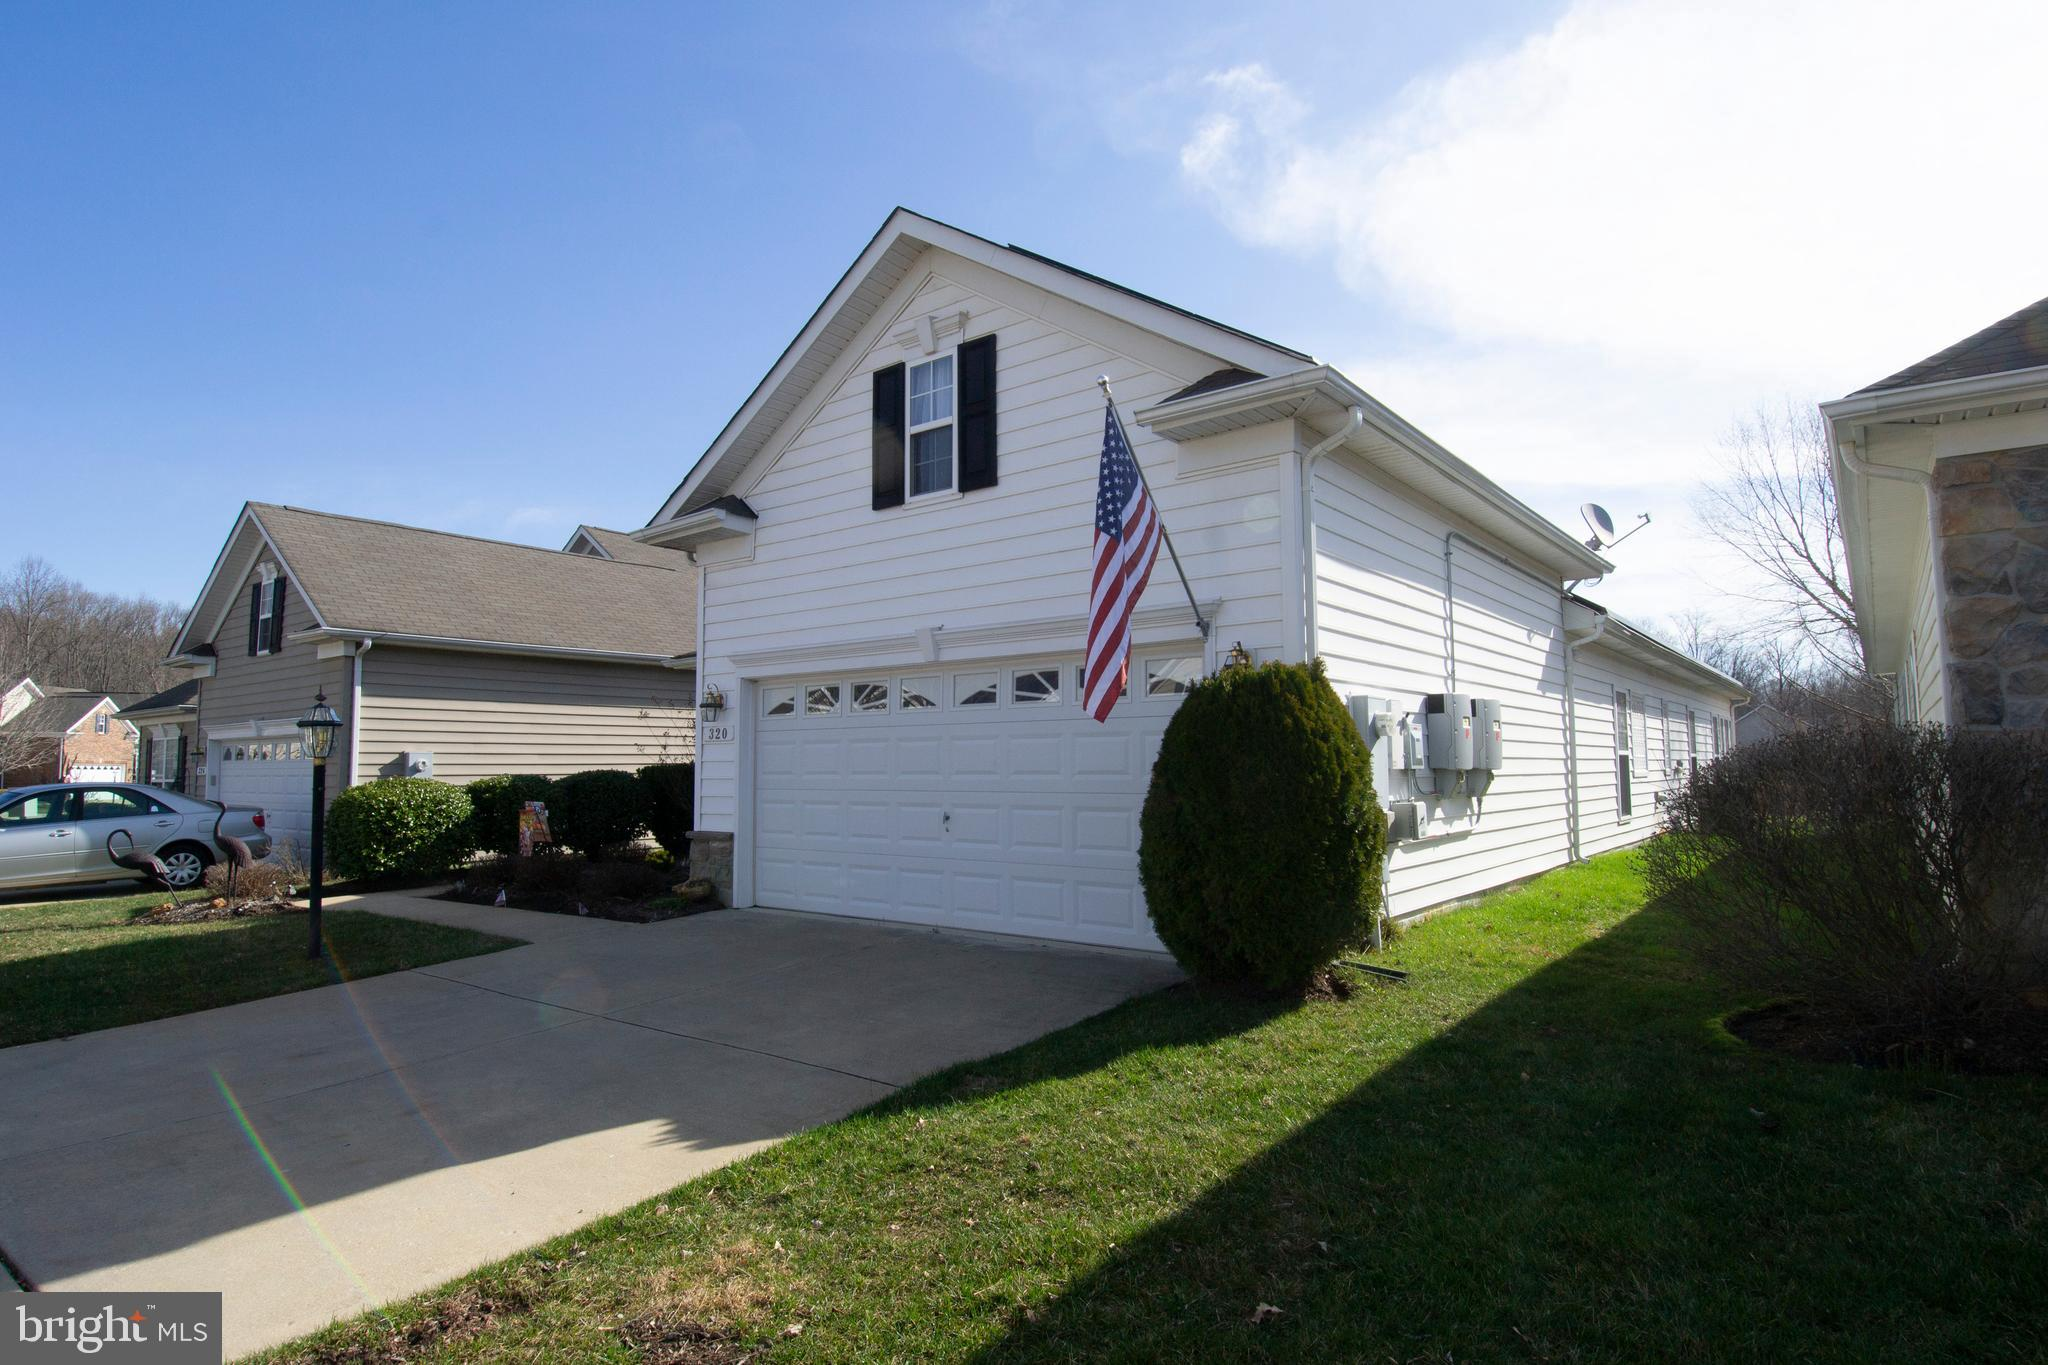 Welcome to retirement at 320 Overture Way. This home is in the 55+ of Symphony Village. The communit